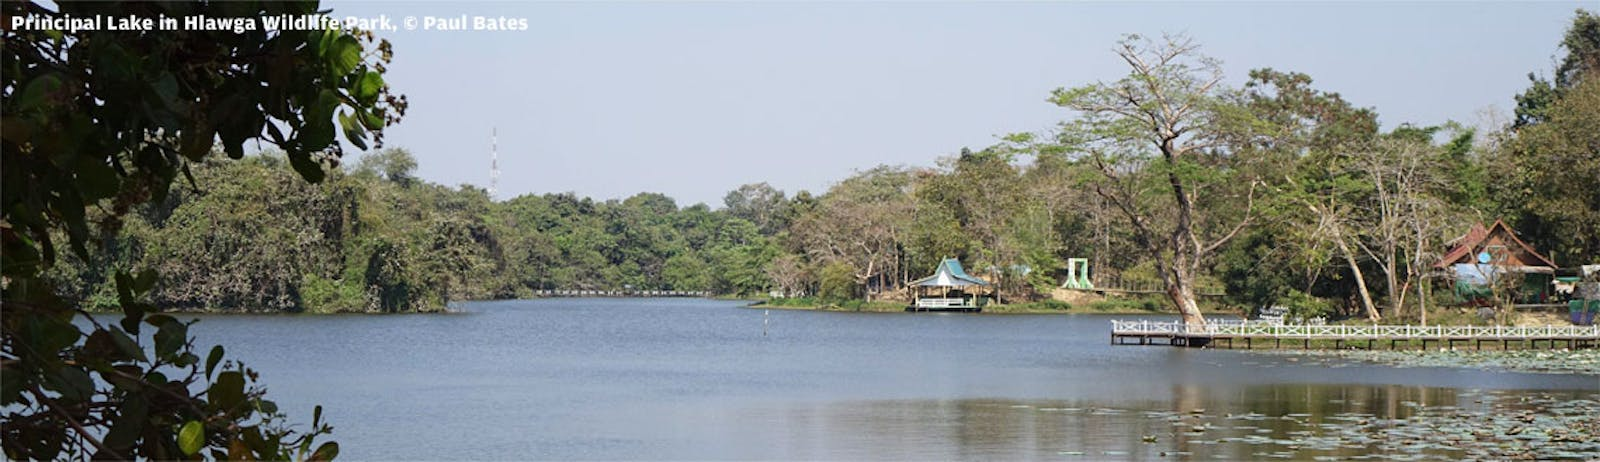 Irrawaddy Freshwater Swamp Forests